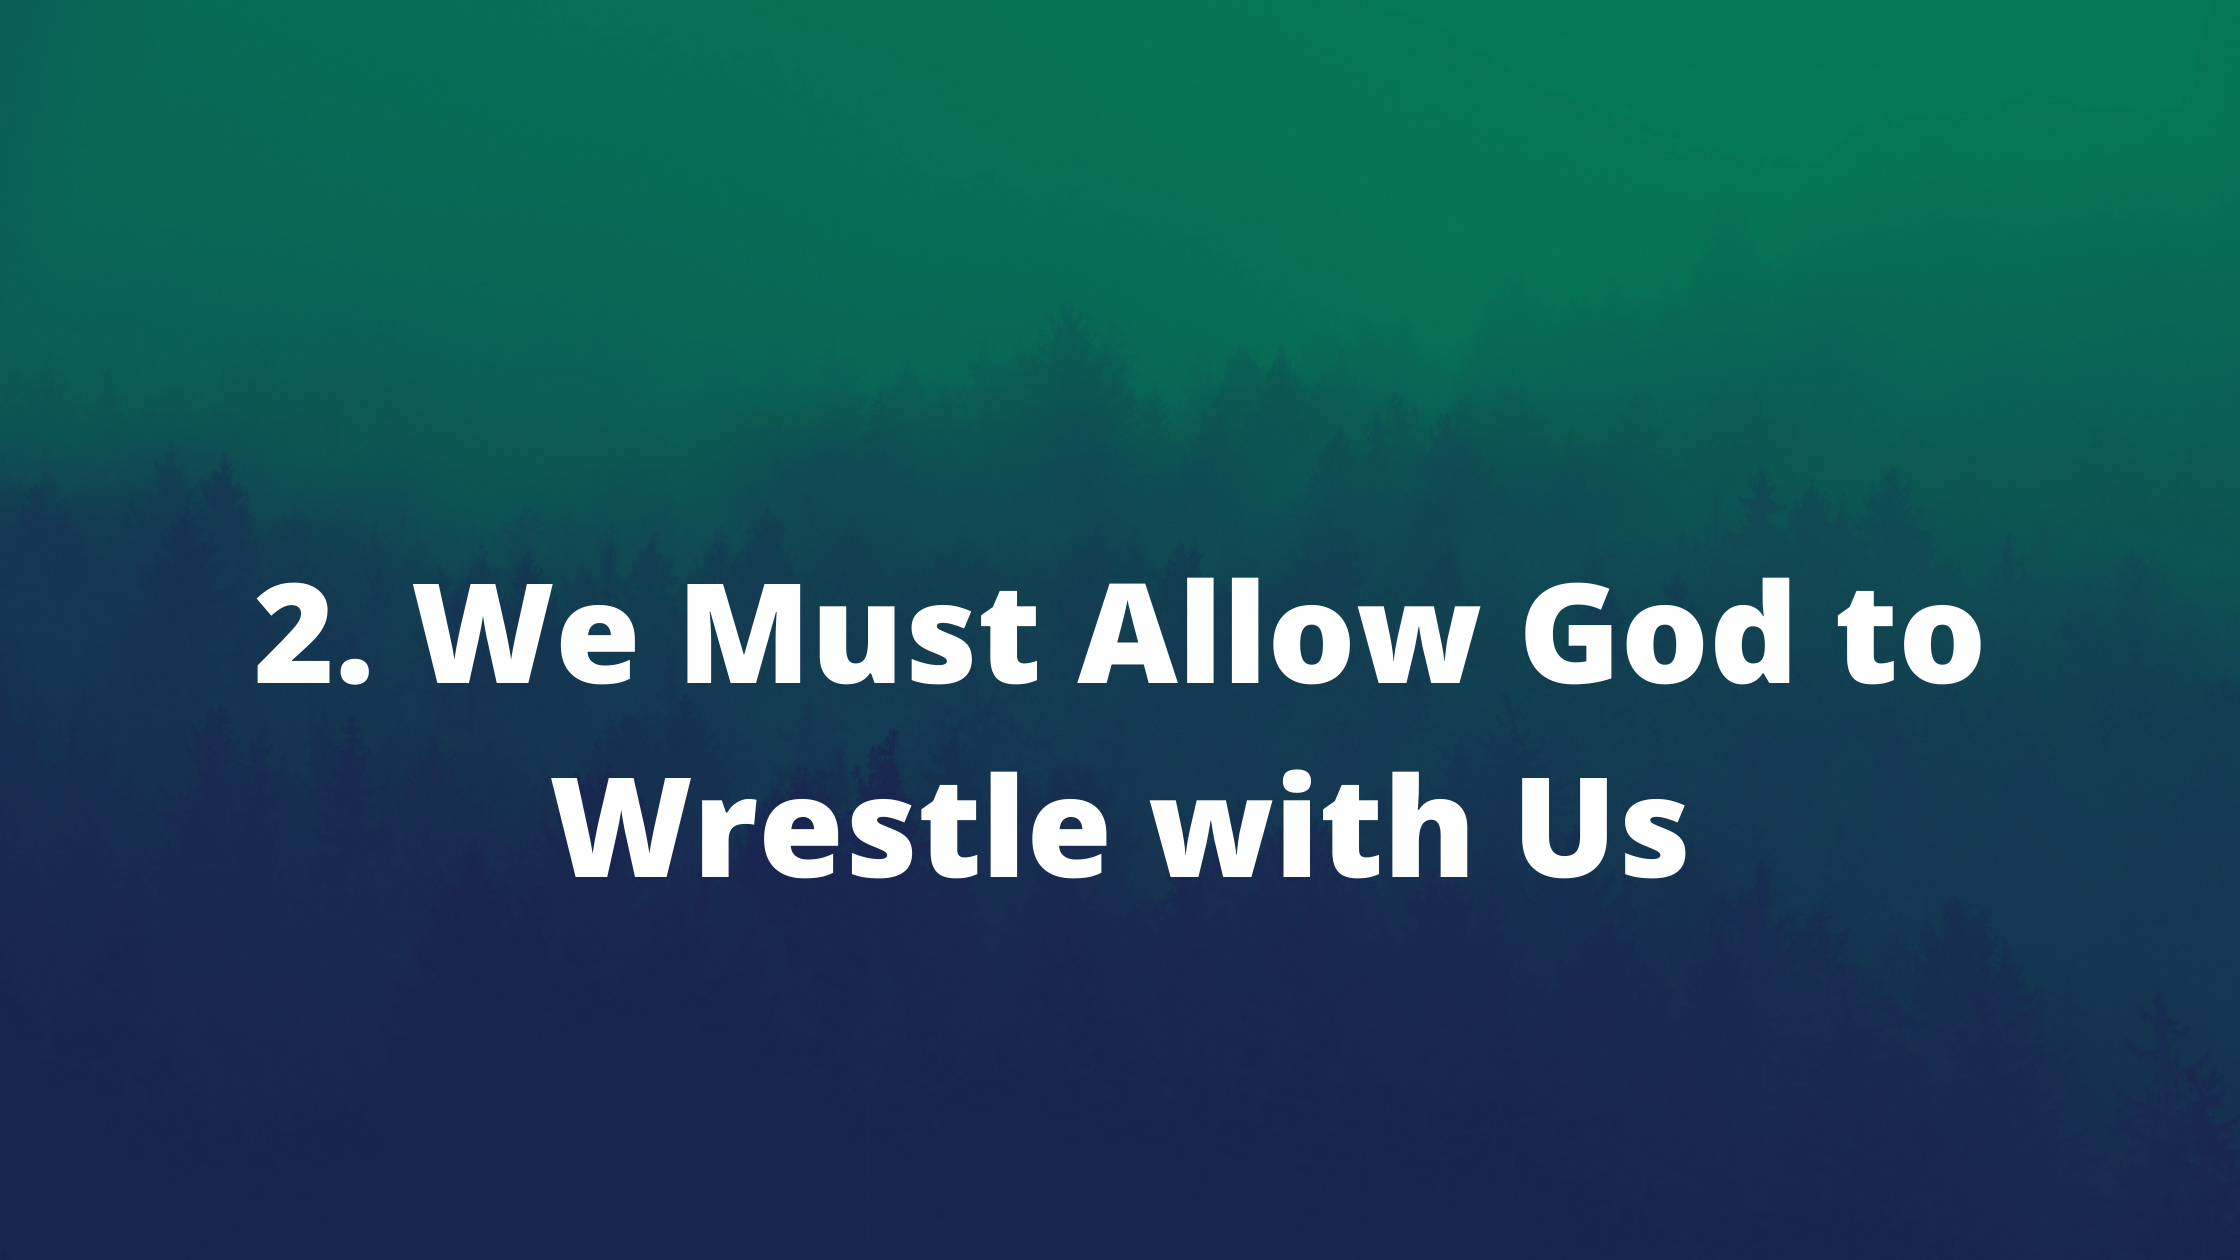 We must allow God to wrestle with us